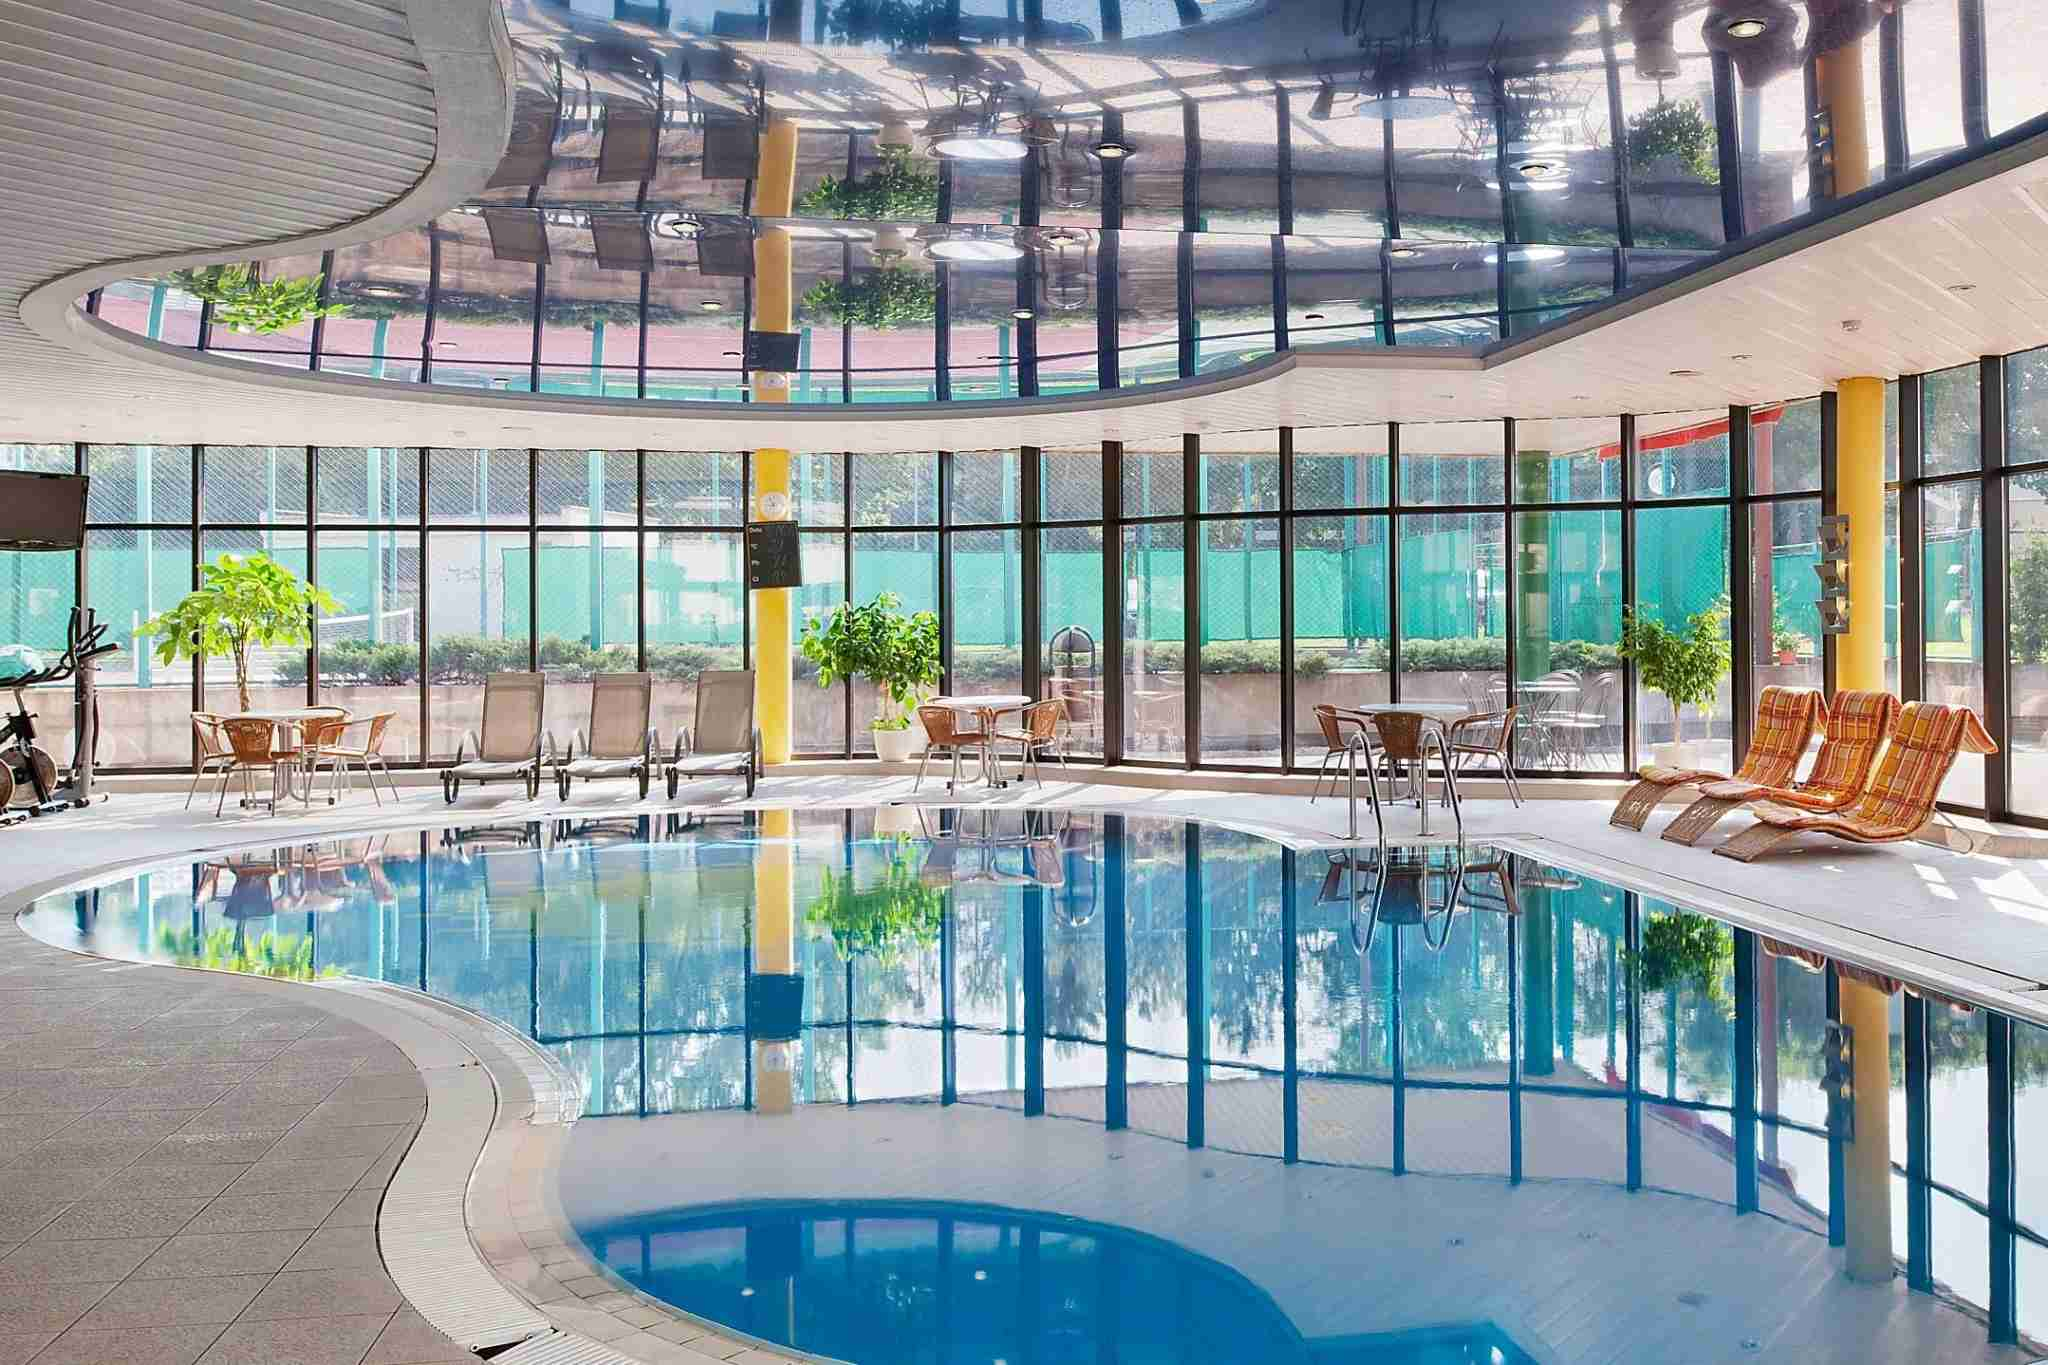 You can relax in the indoor pool or play tennis at the adjacent courts. (Photo courtesy of IHG.)